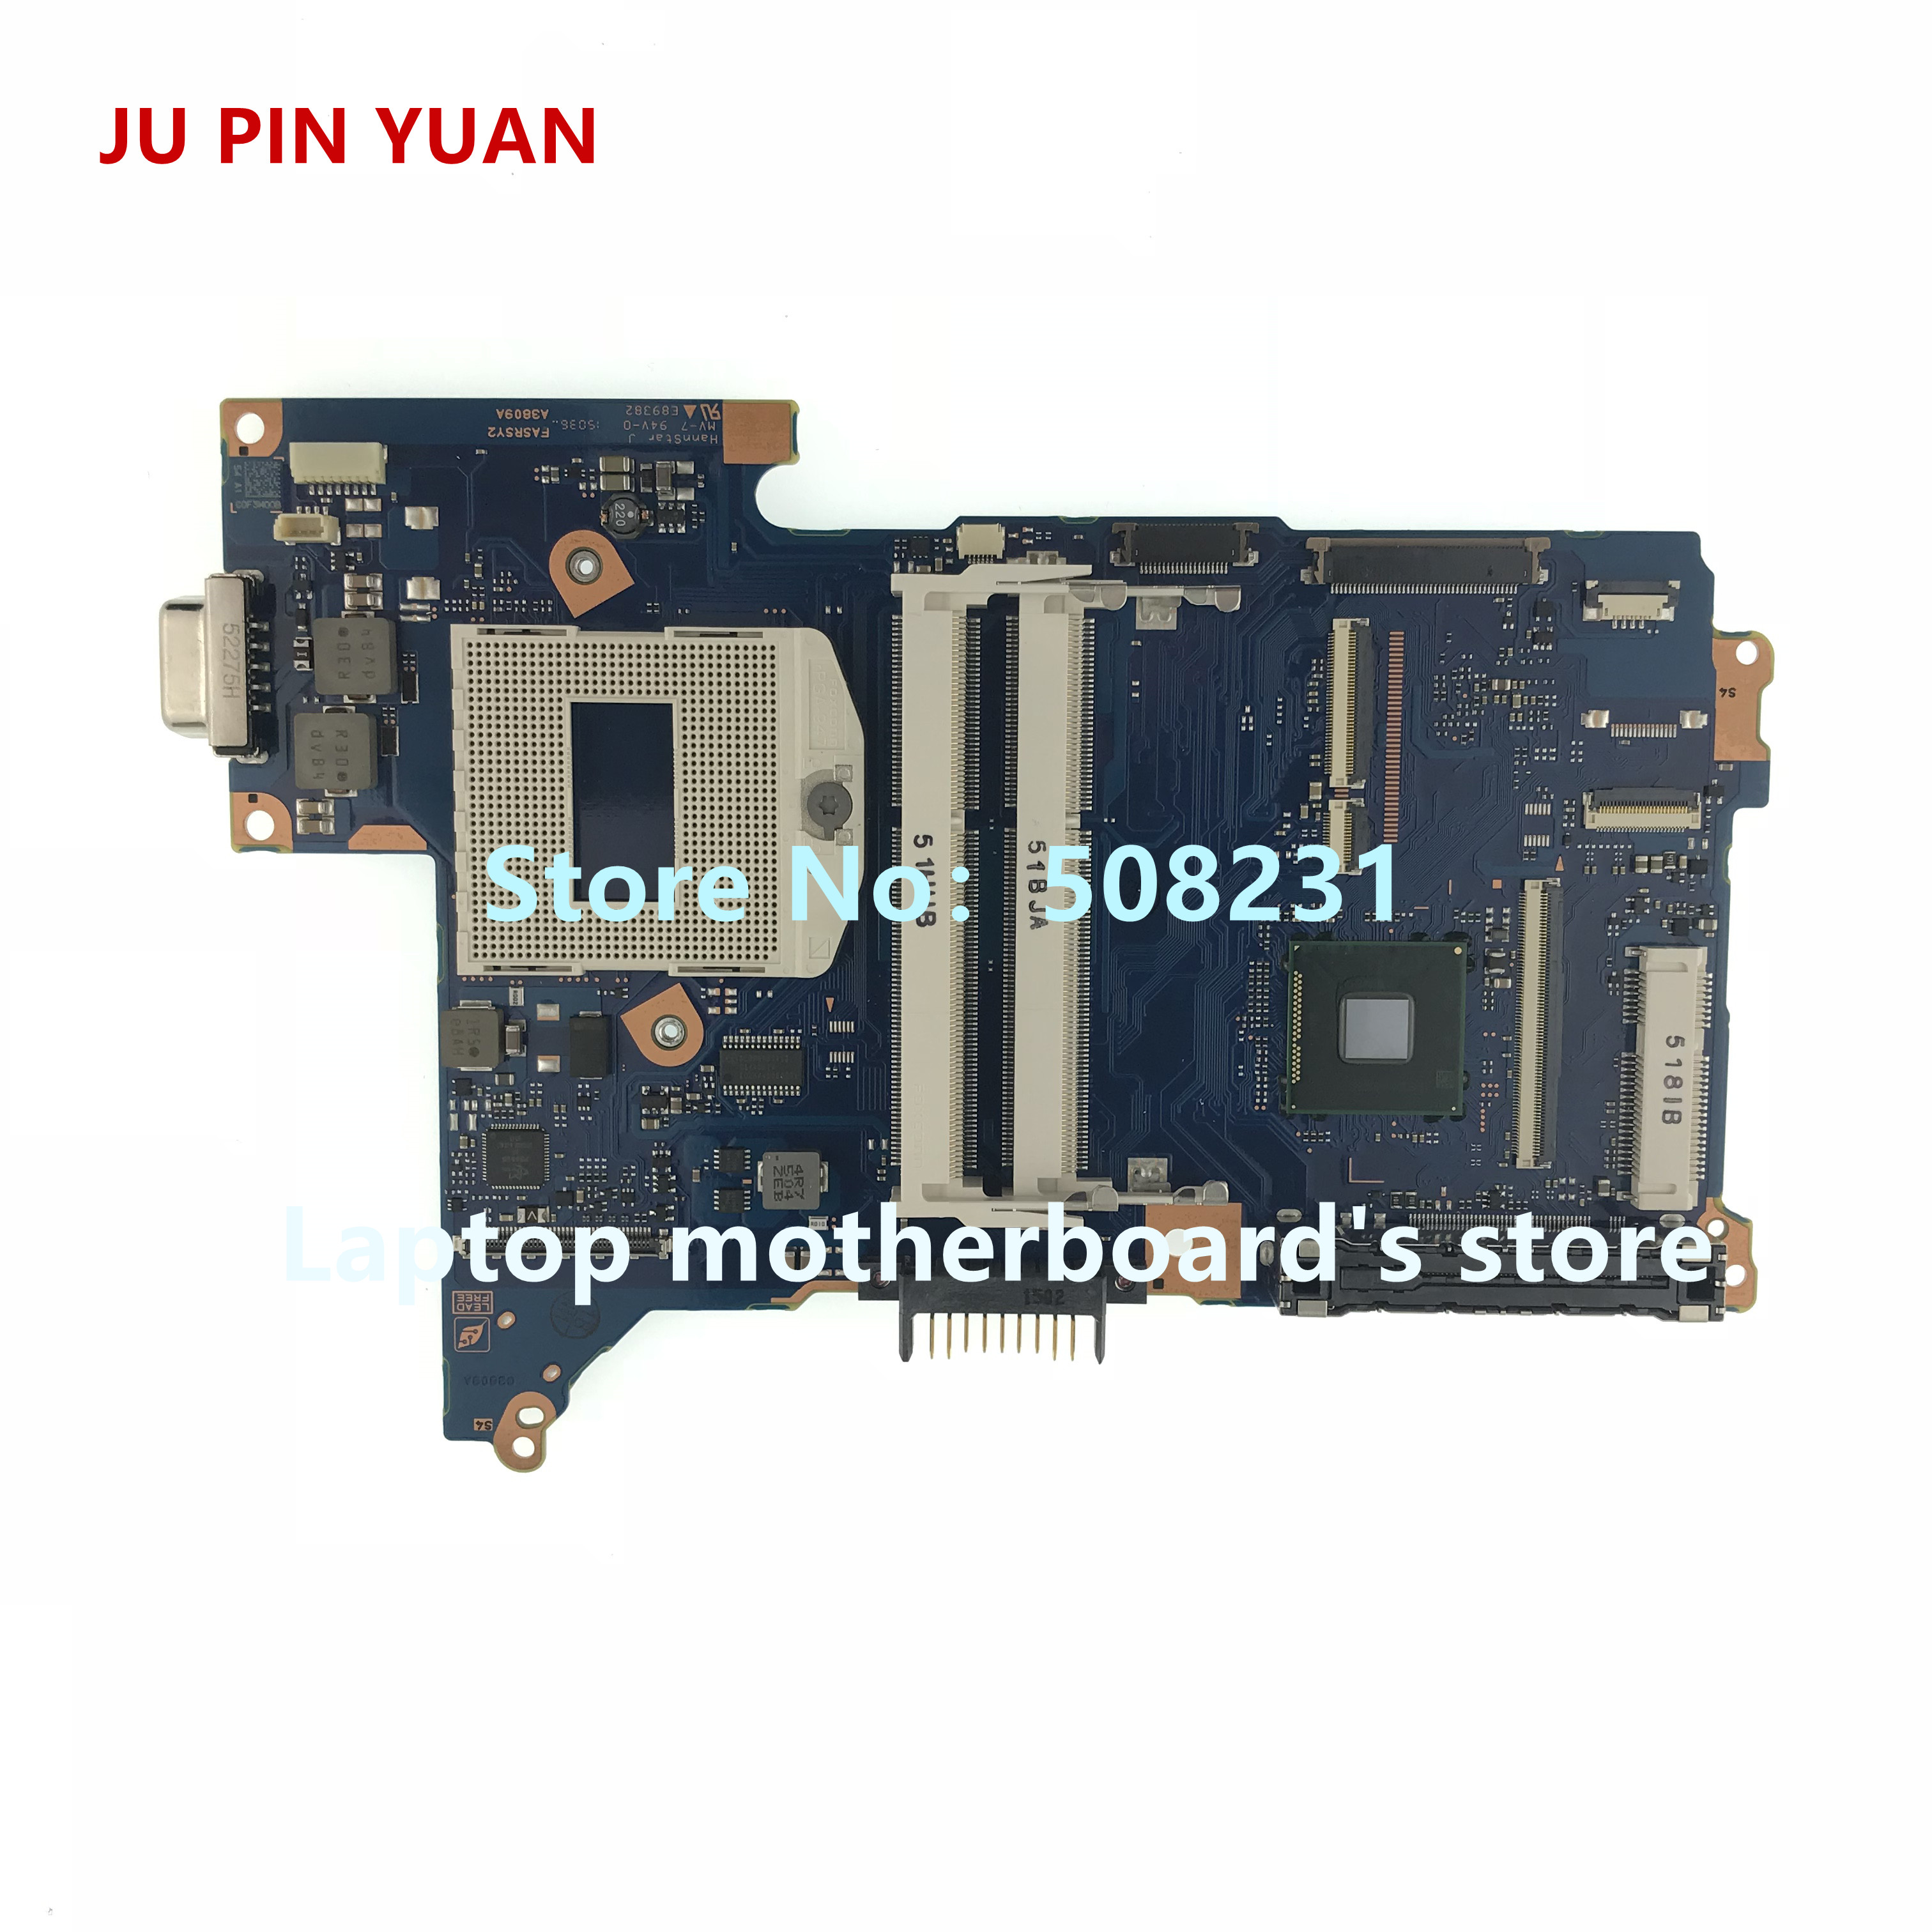 JU PIN YUAN FASRSY2 mainboard For Toshiba Portege R30 R30-A laptop motherboard A3809A socket PGA 947